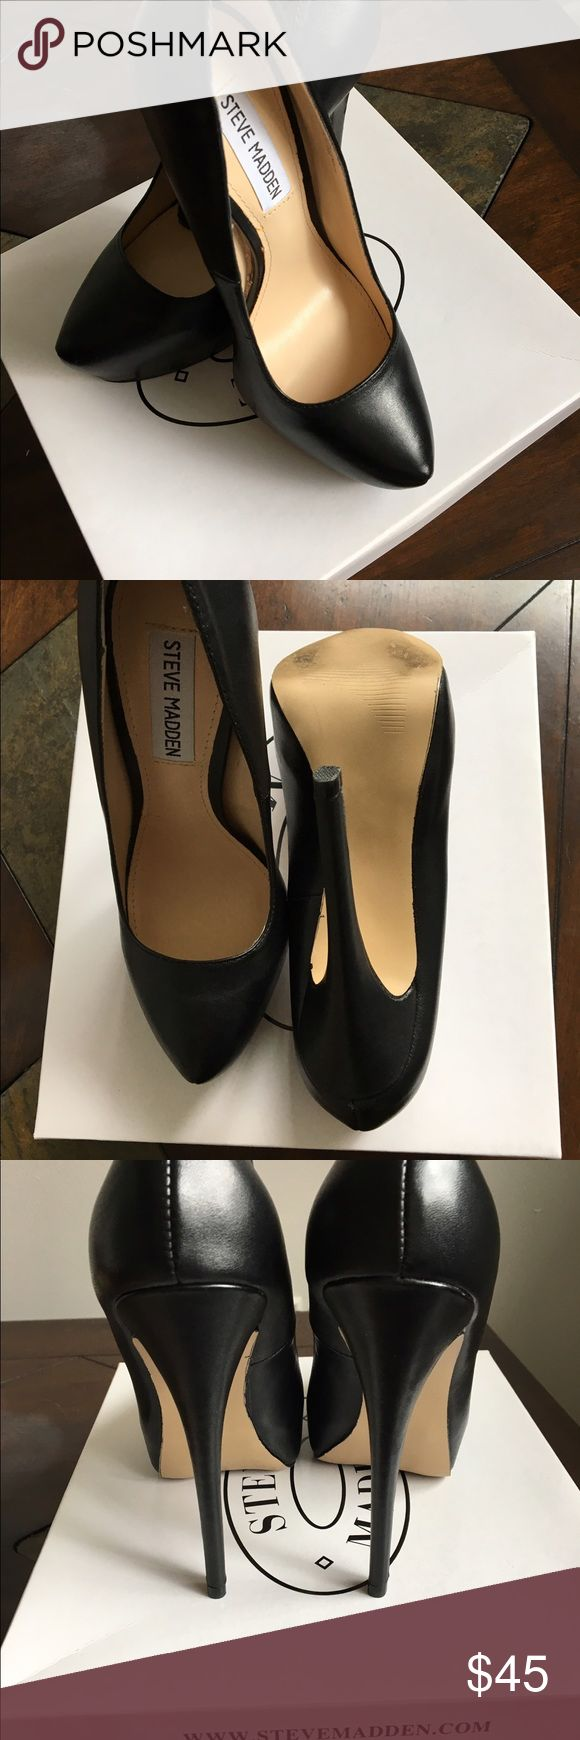 Steve Madden Yasmin Black Elegant High Heels Gently worn once, no scratches or any other damages.Very comfortable and looks great for the parties and business meeting Steve Madden Shoes Heels